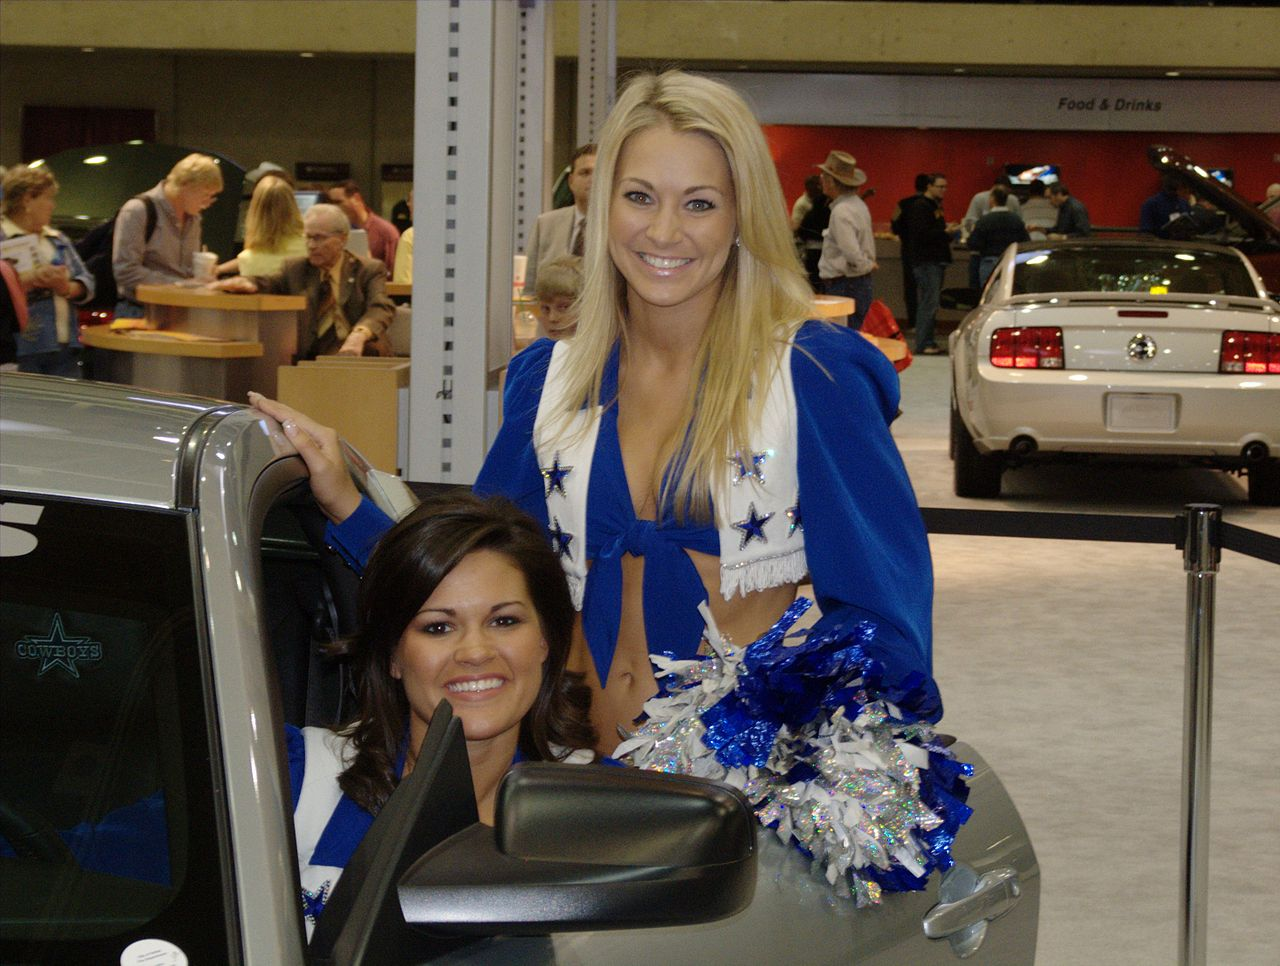 FileDallas Cheerleaders Car Showjpg Wikimedia Commons - Dallas car show